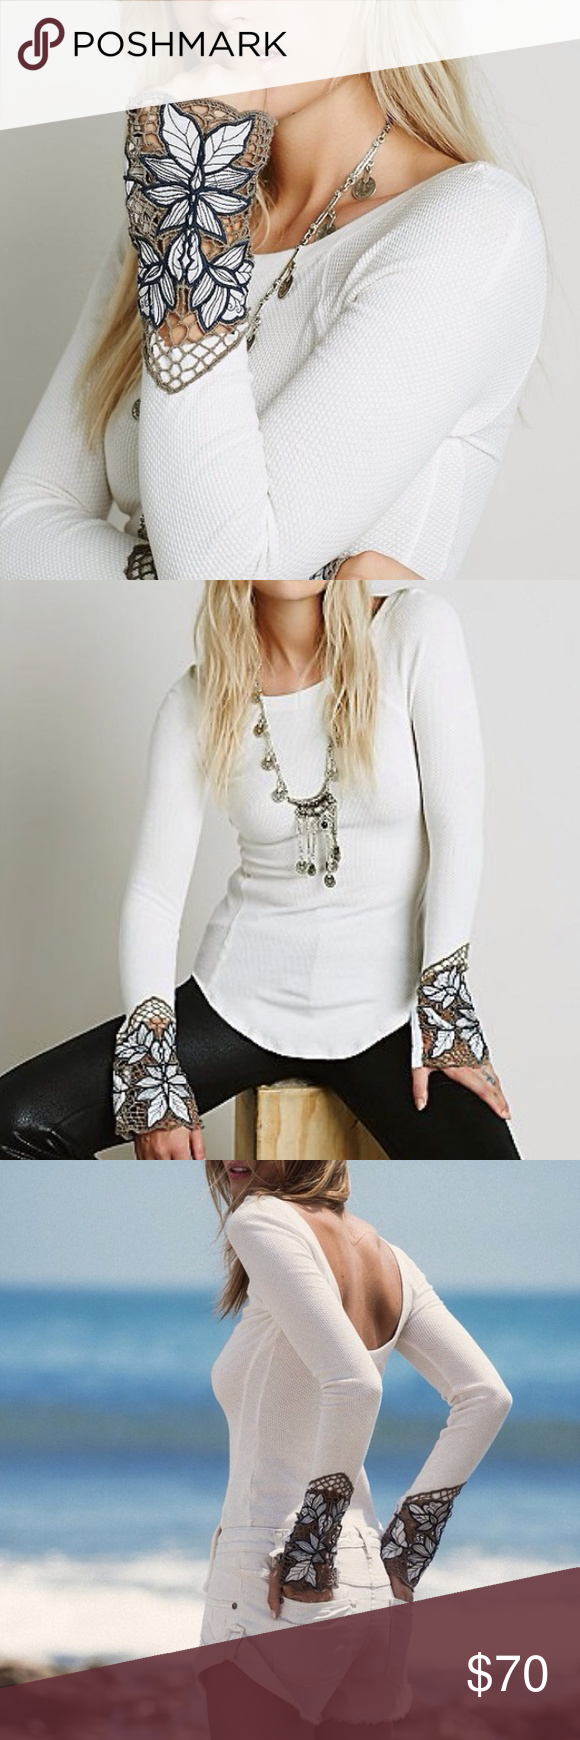 Free People lace cuff thermal Beautiful, soft, open back thermal. Brand new, never worn! Size large, but material is stretchy enough, it will fit a medium well also. Exact colors as in photos above. Free People Tops Tees - Long Sleeve